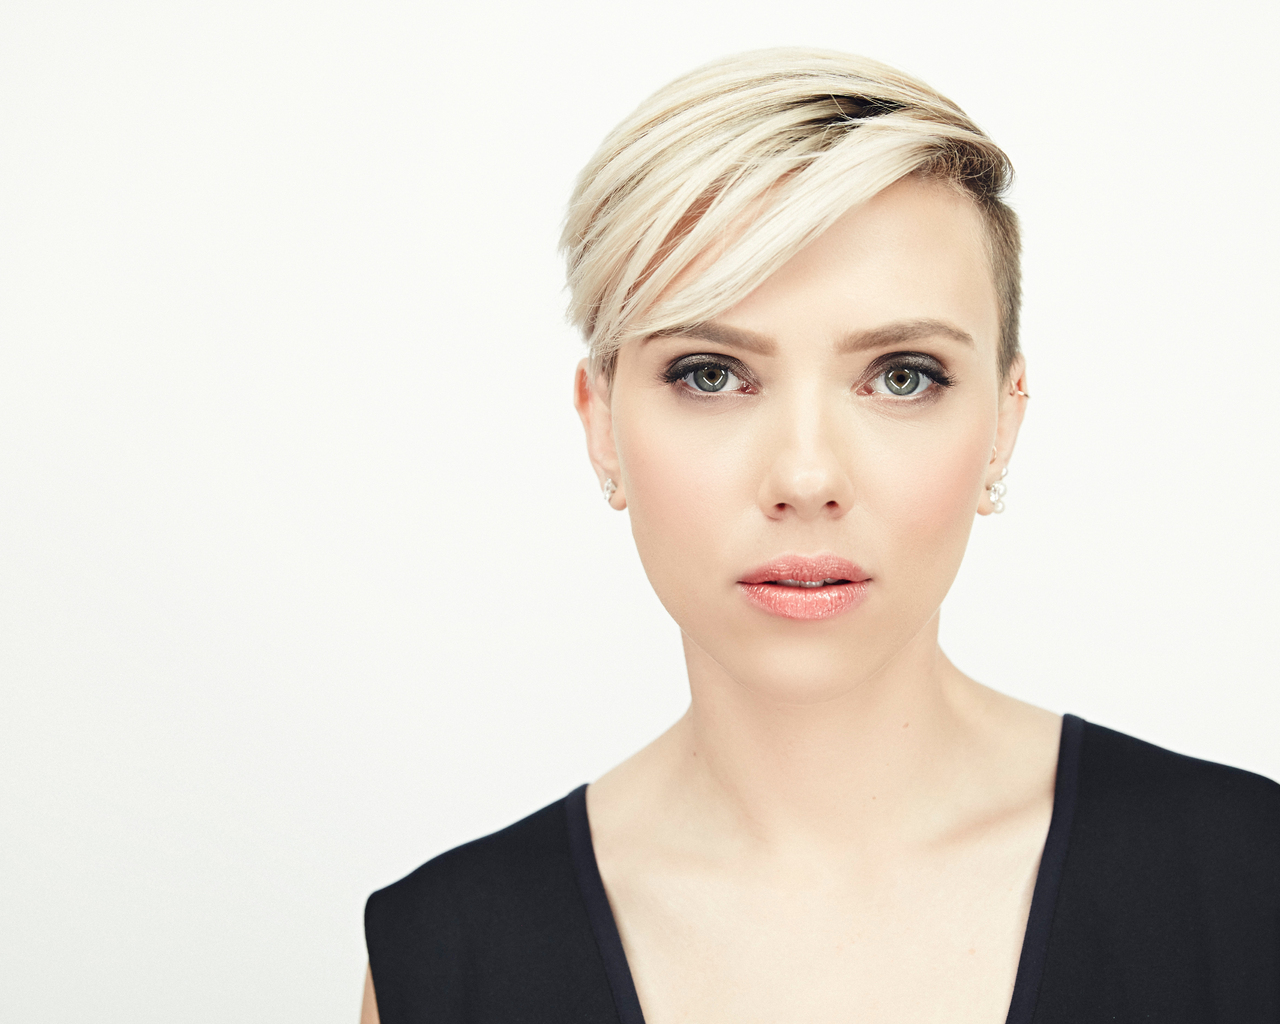 1280x1024 Scarlett Johansson Short Hair Blonde 5k 1280x1024 Resolution Hd 4k Wallpapers Images Backgrounds Photos And Pictures